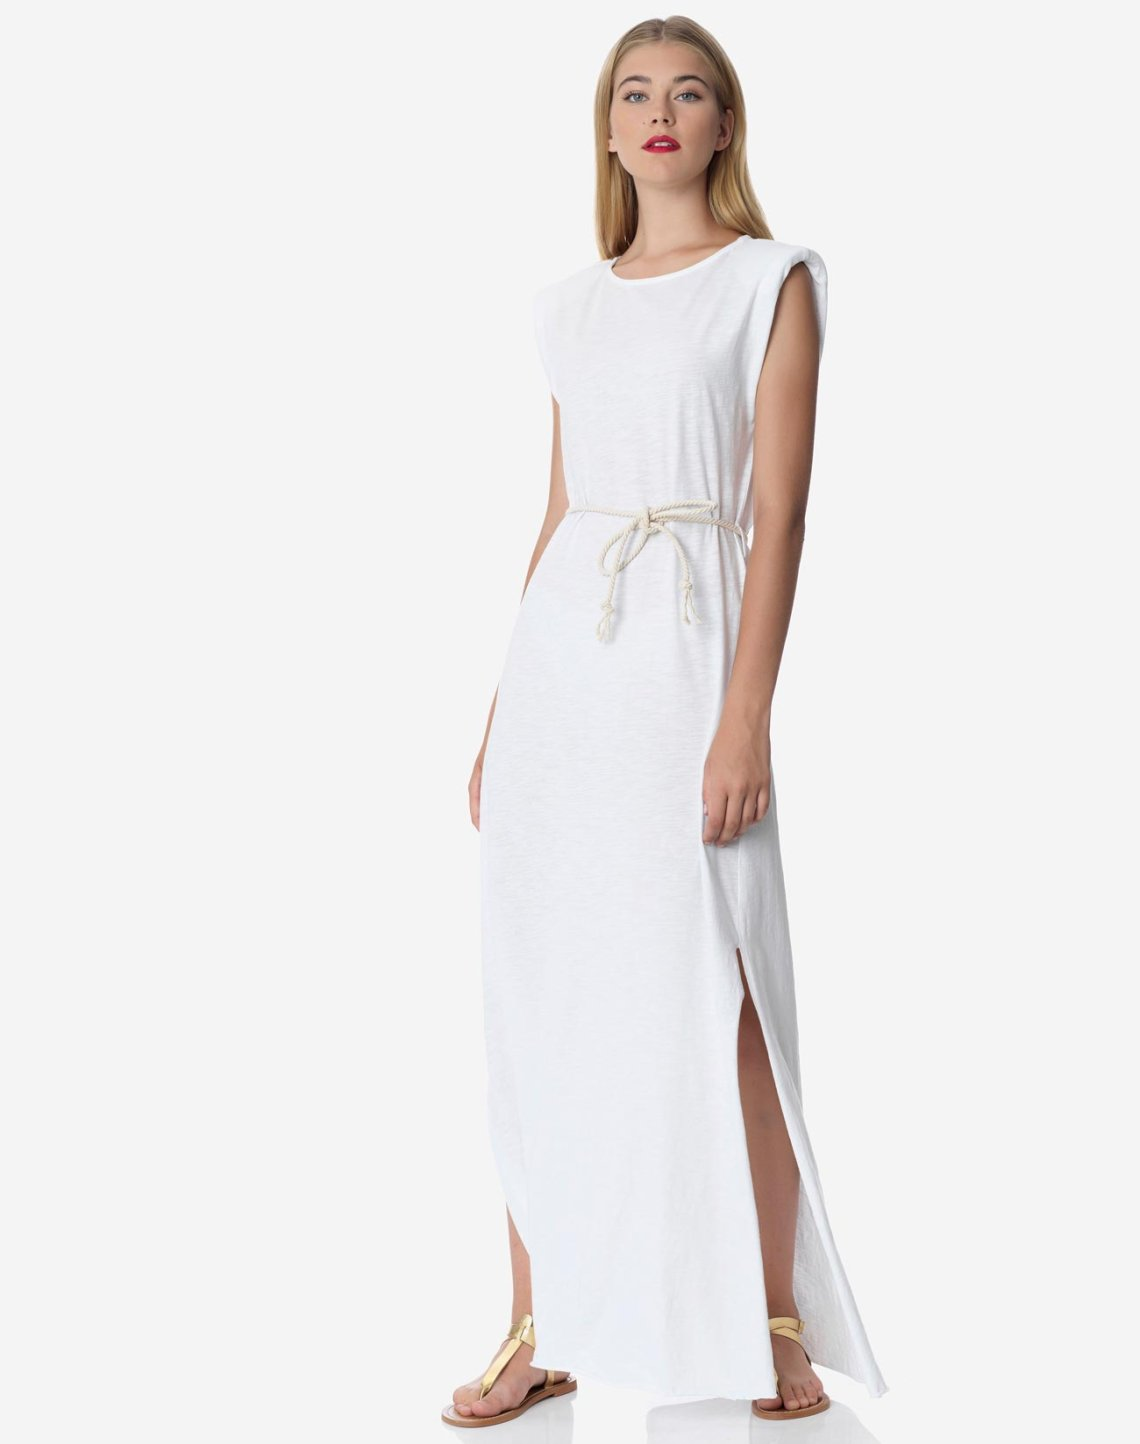 Maxi dress with shoulder pads